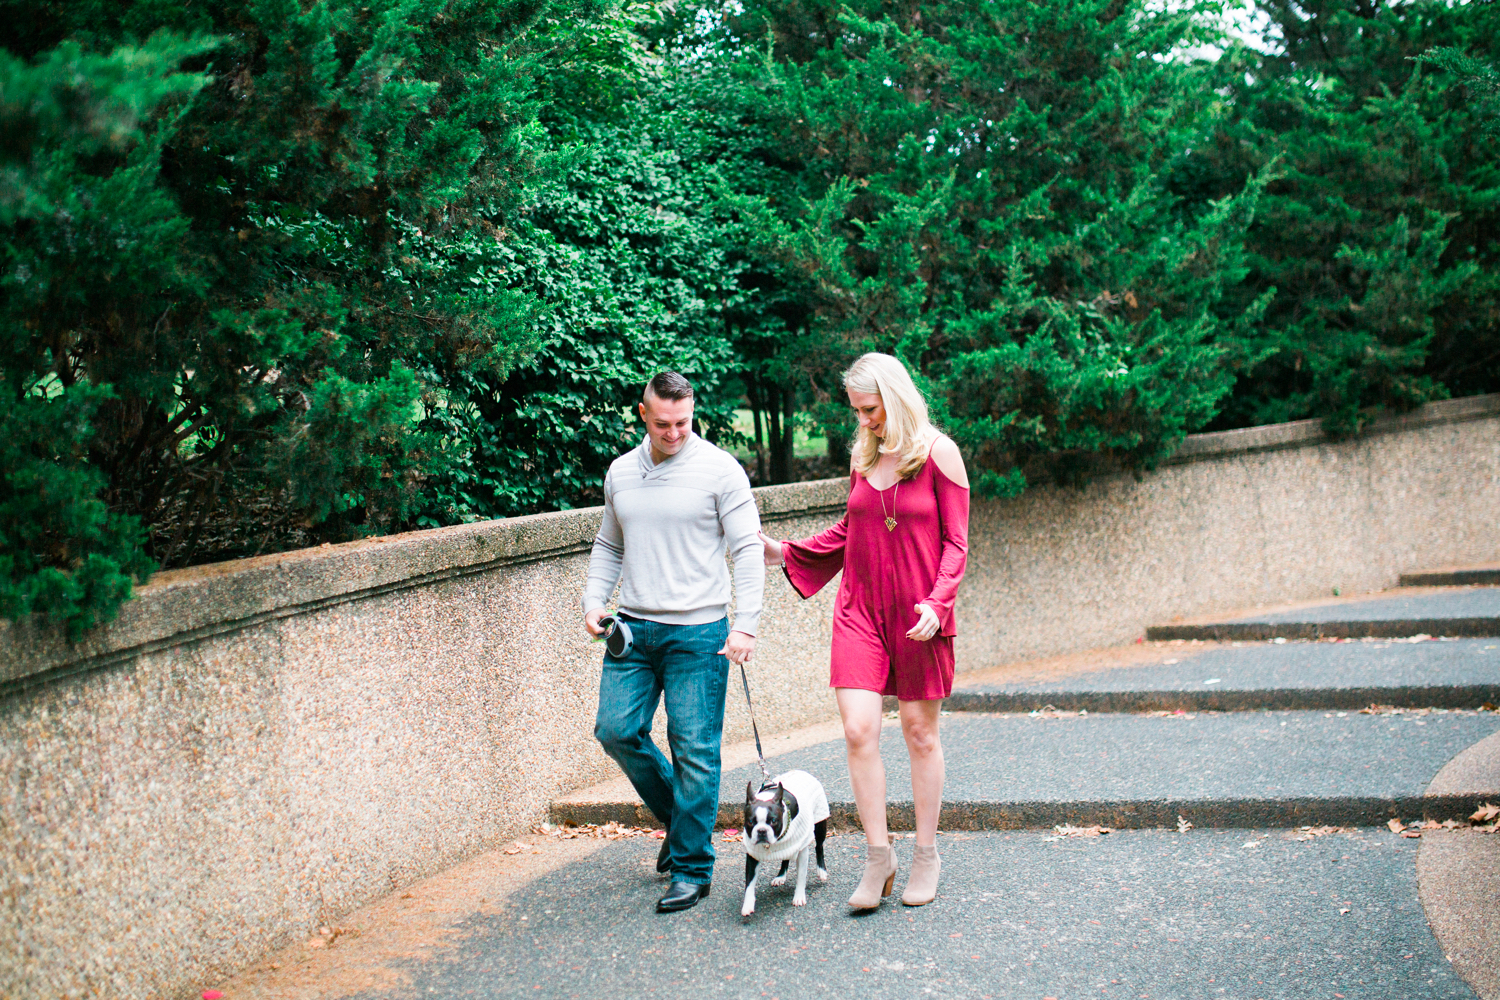 Image 2 of Laura and Shawn